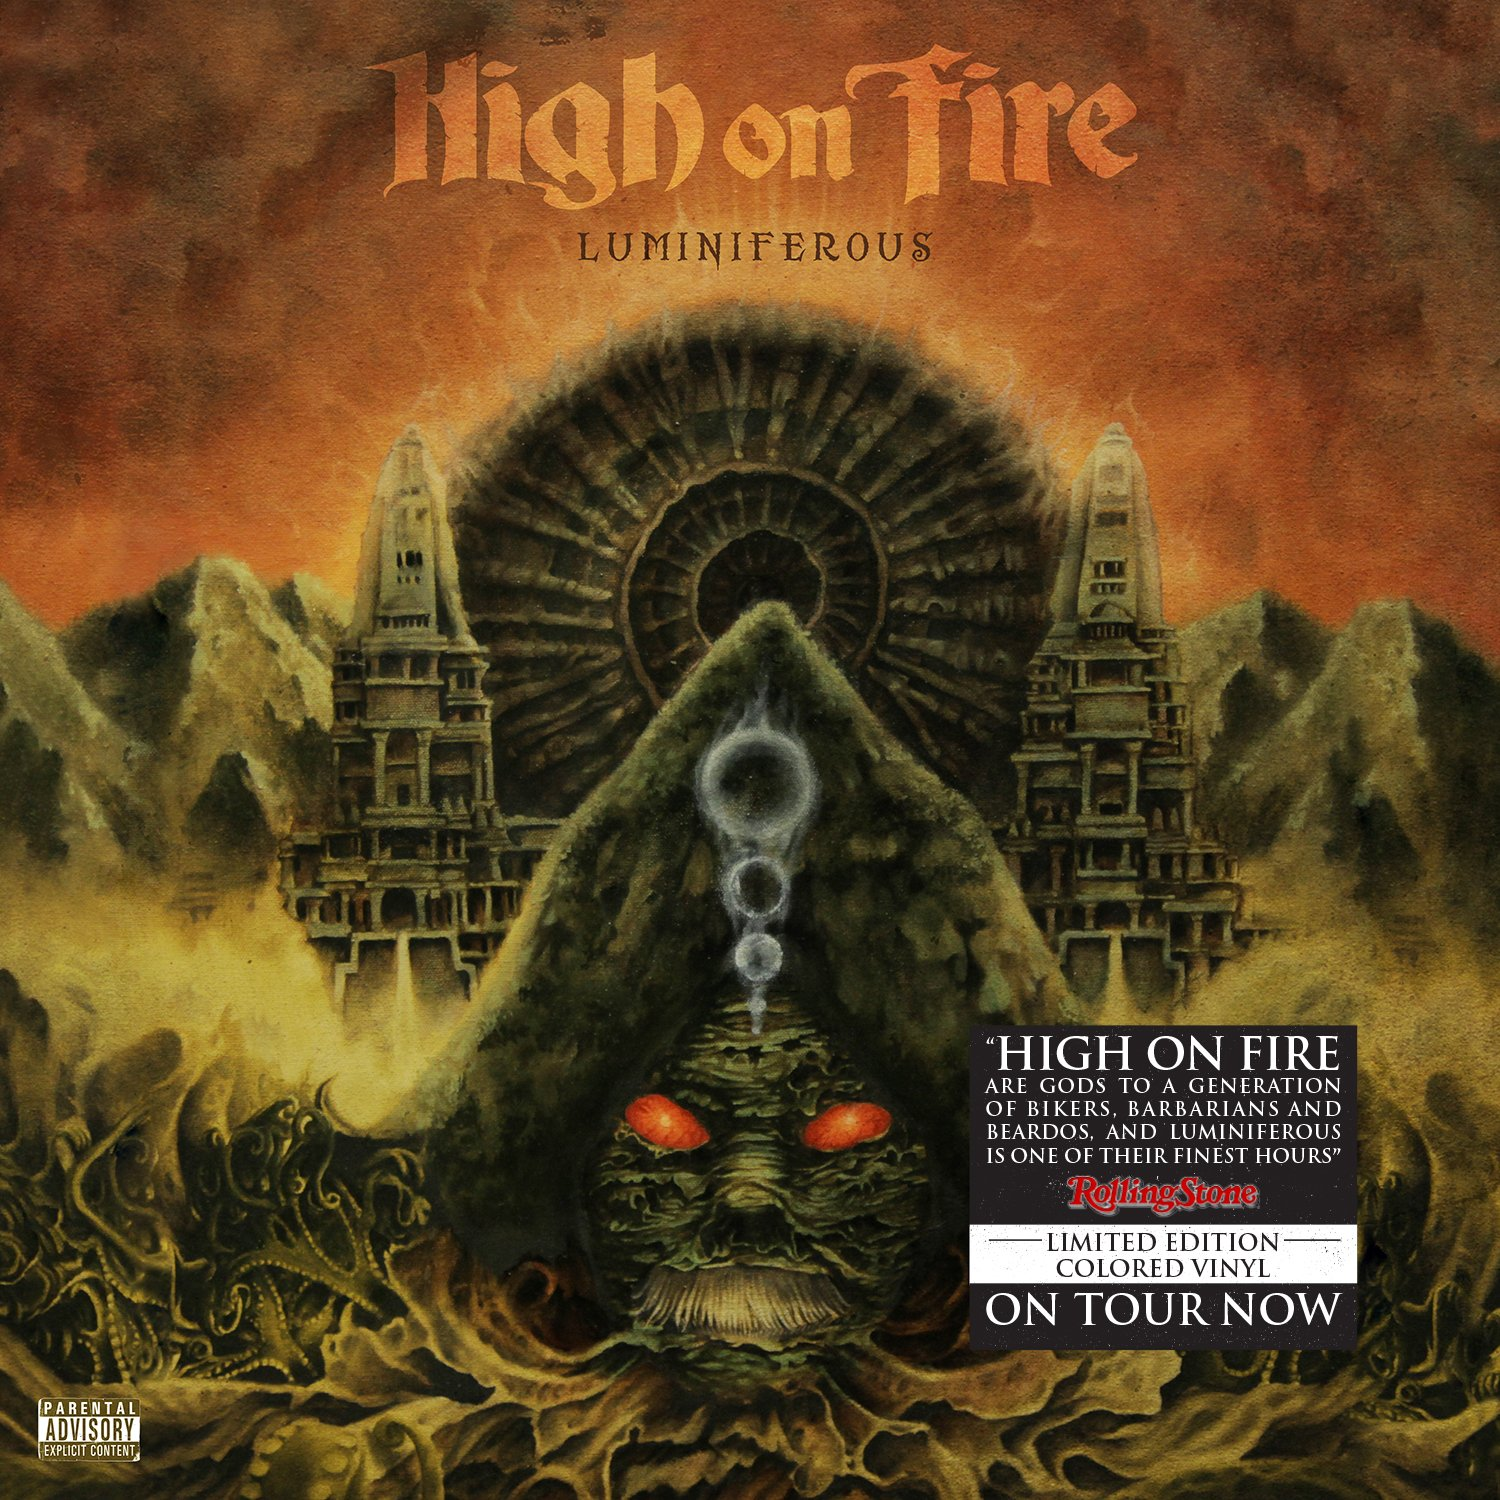 Vinilo : High on Fire - Luminiferous (LP Vinyl)